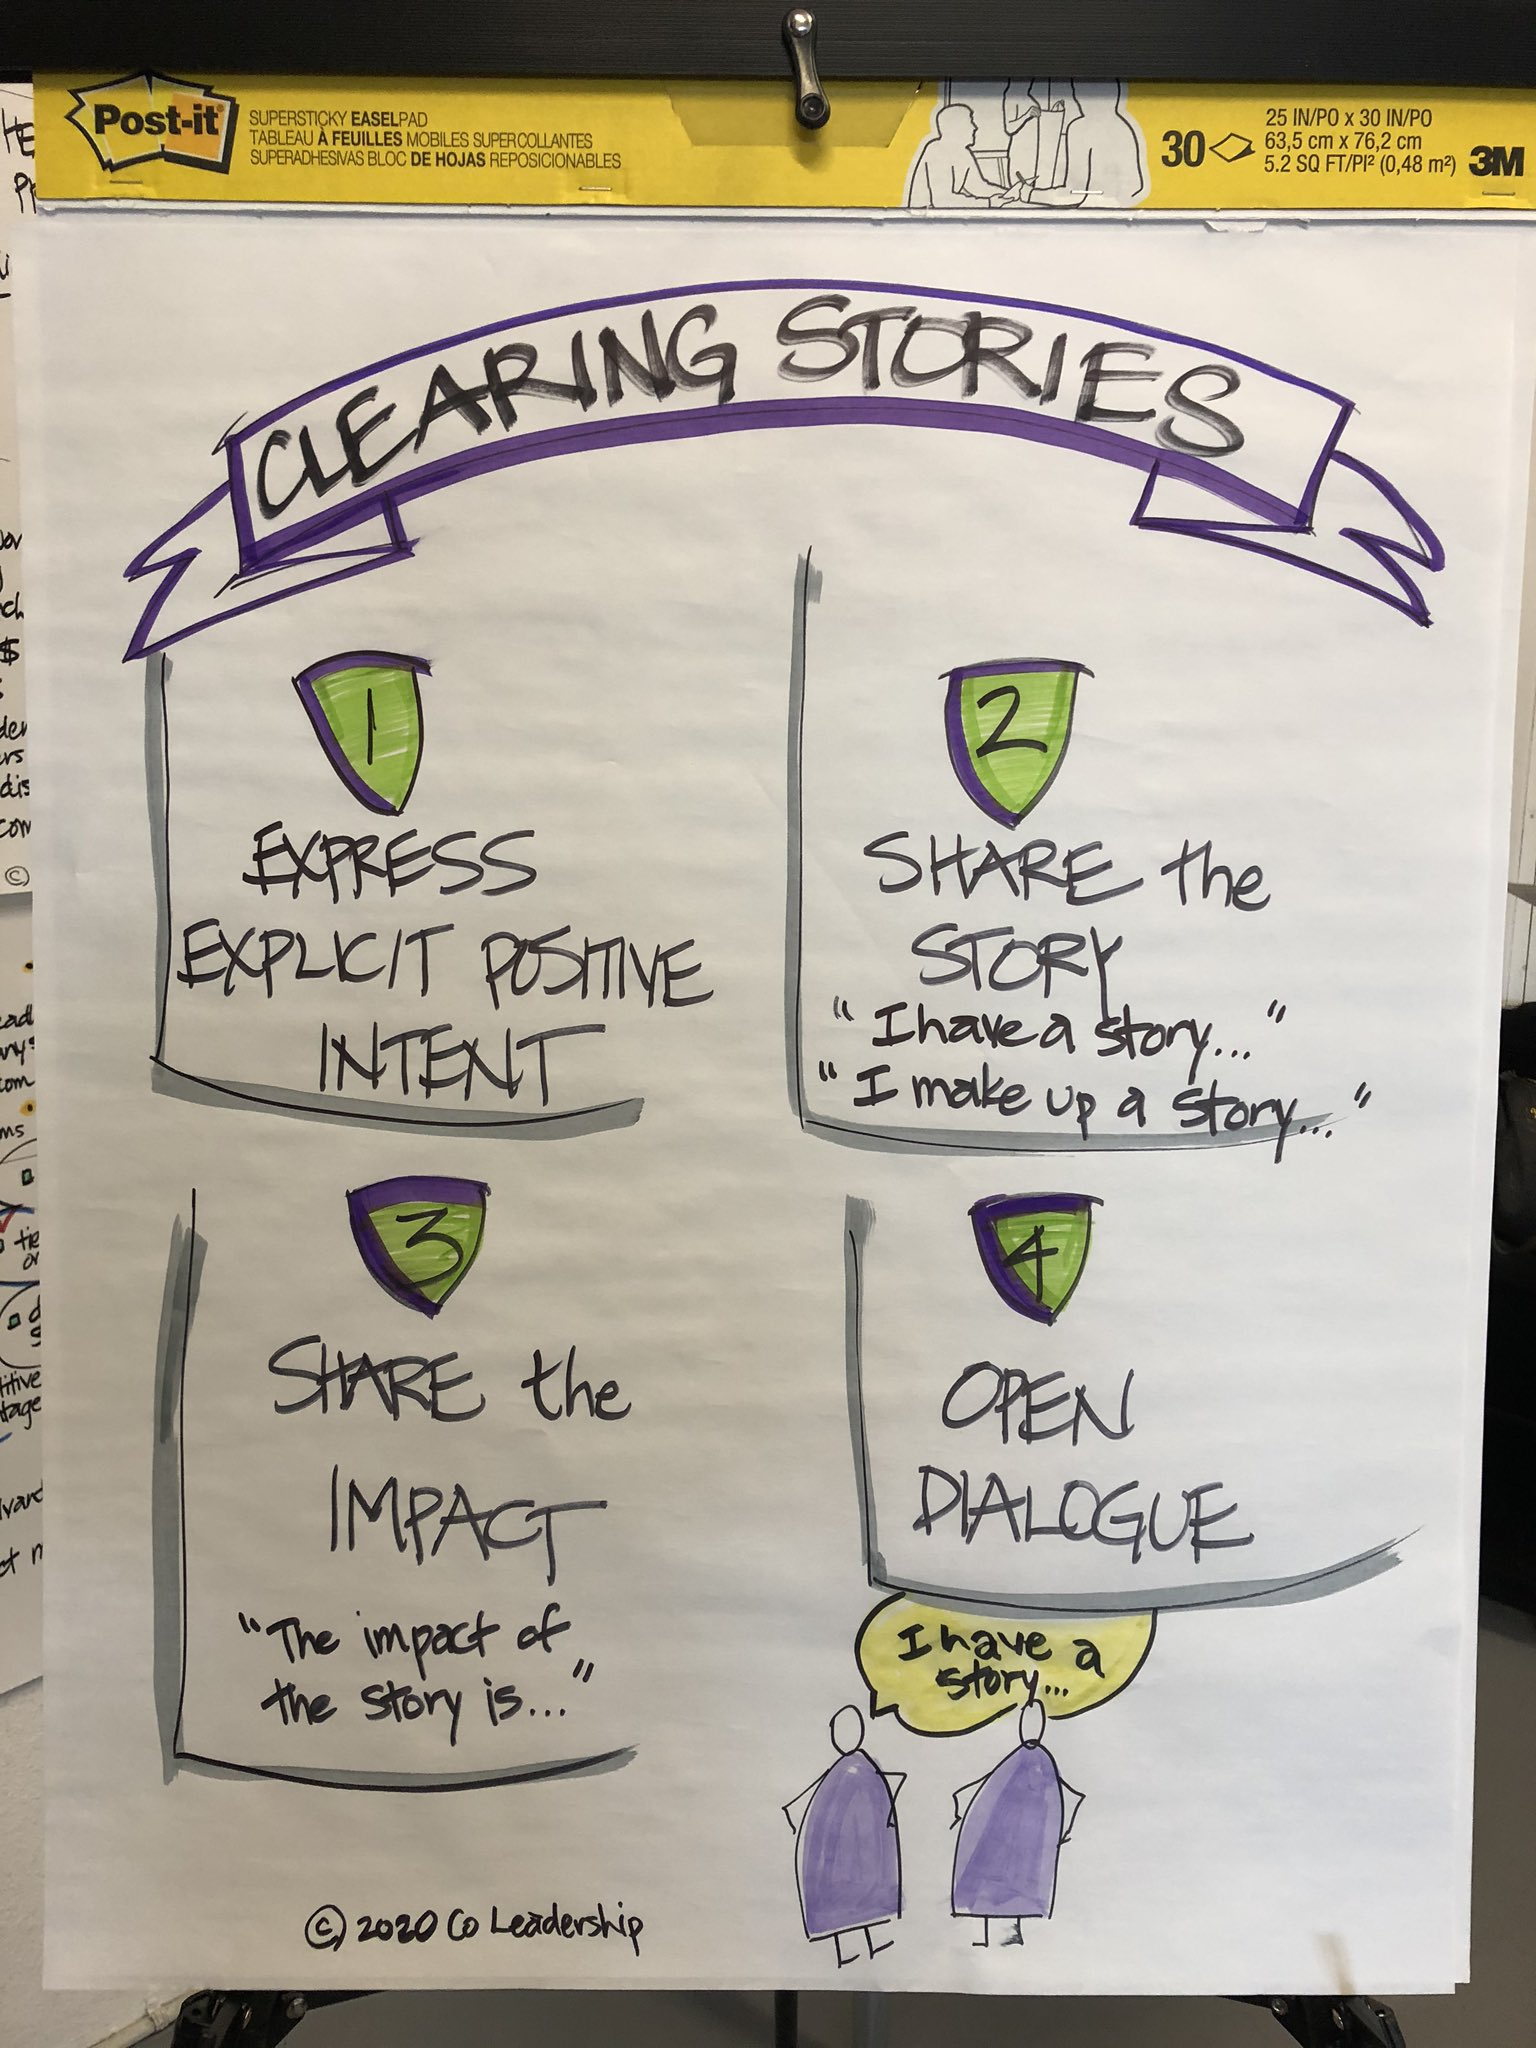 Clearing stories exercise sketch notes